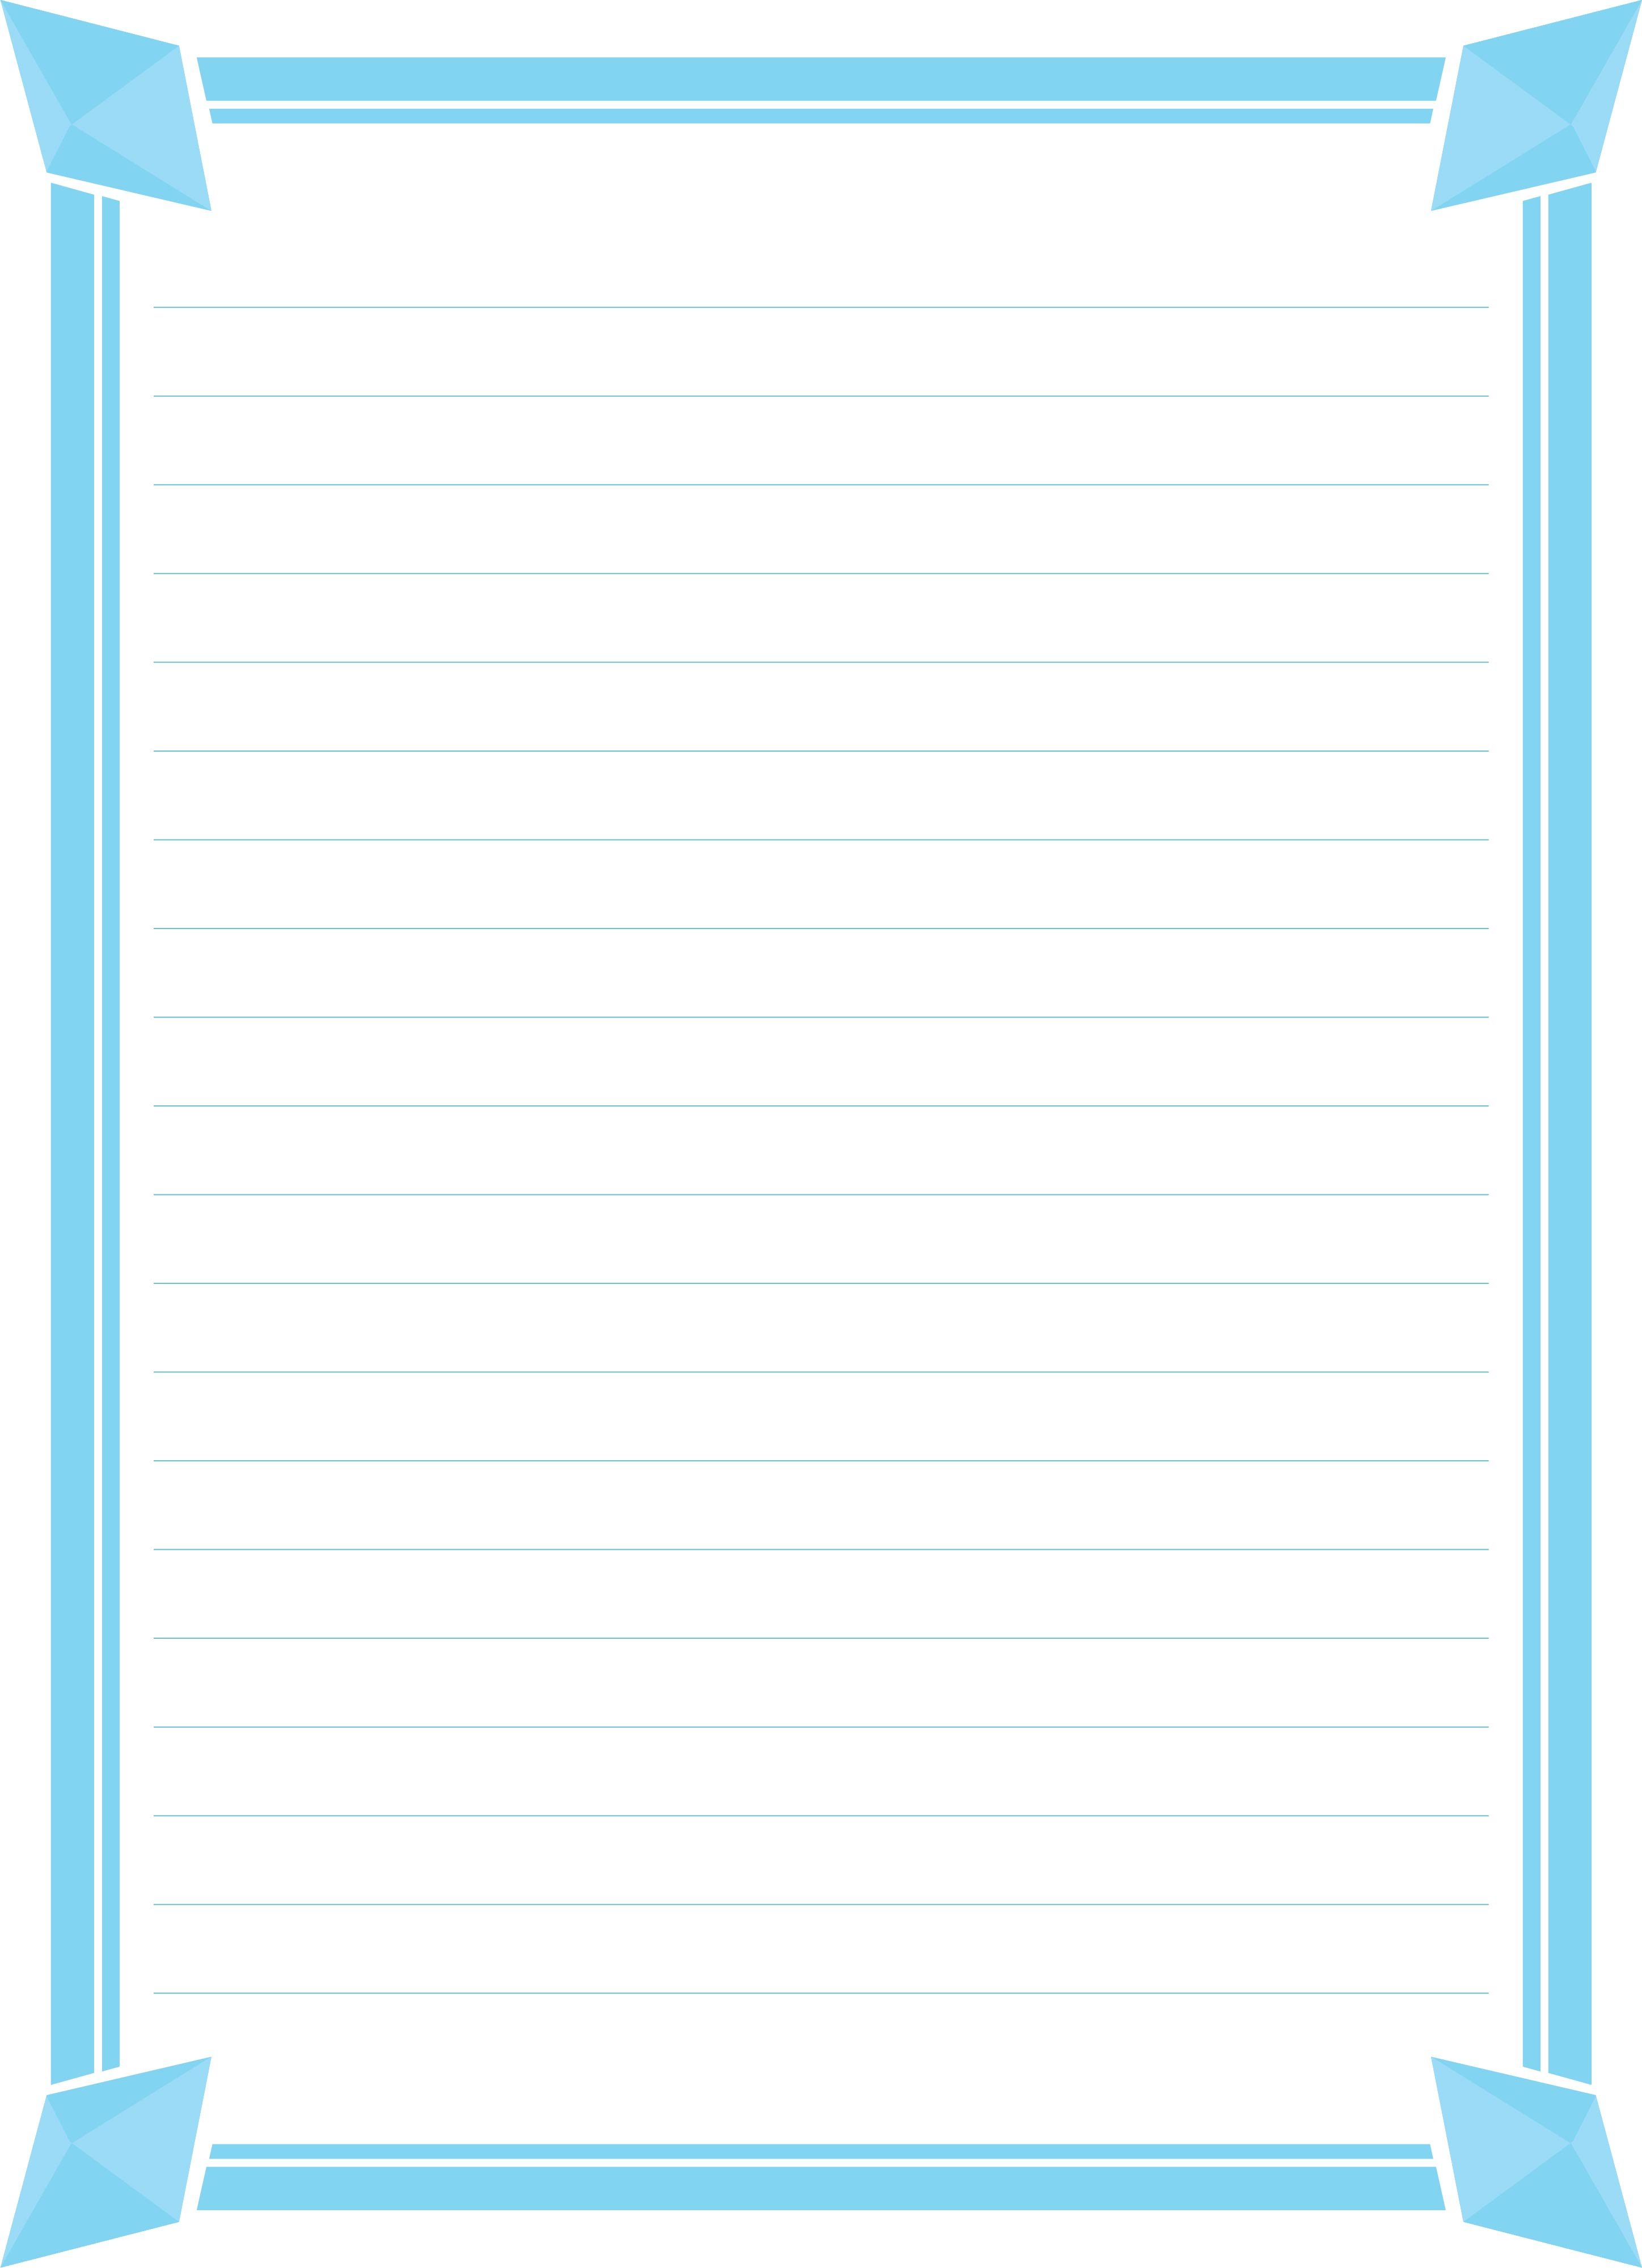 Printable Lined Paper with Borders